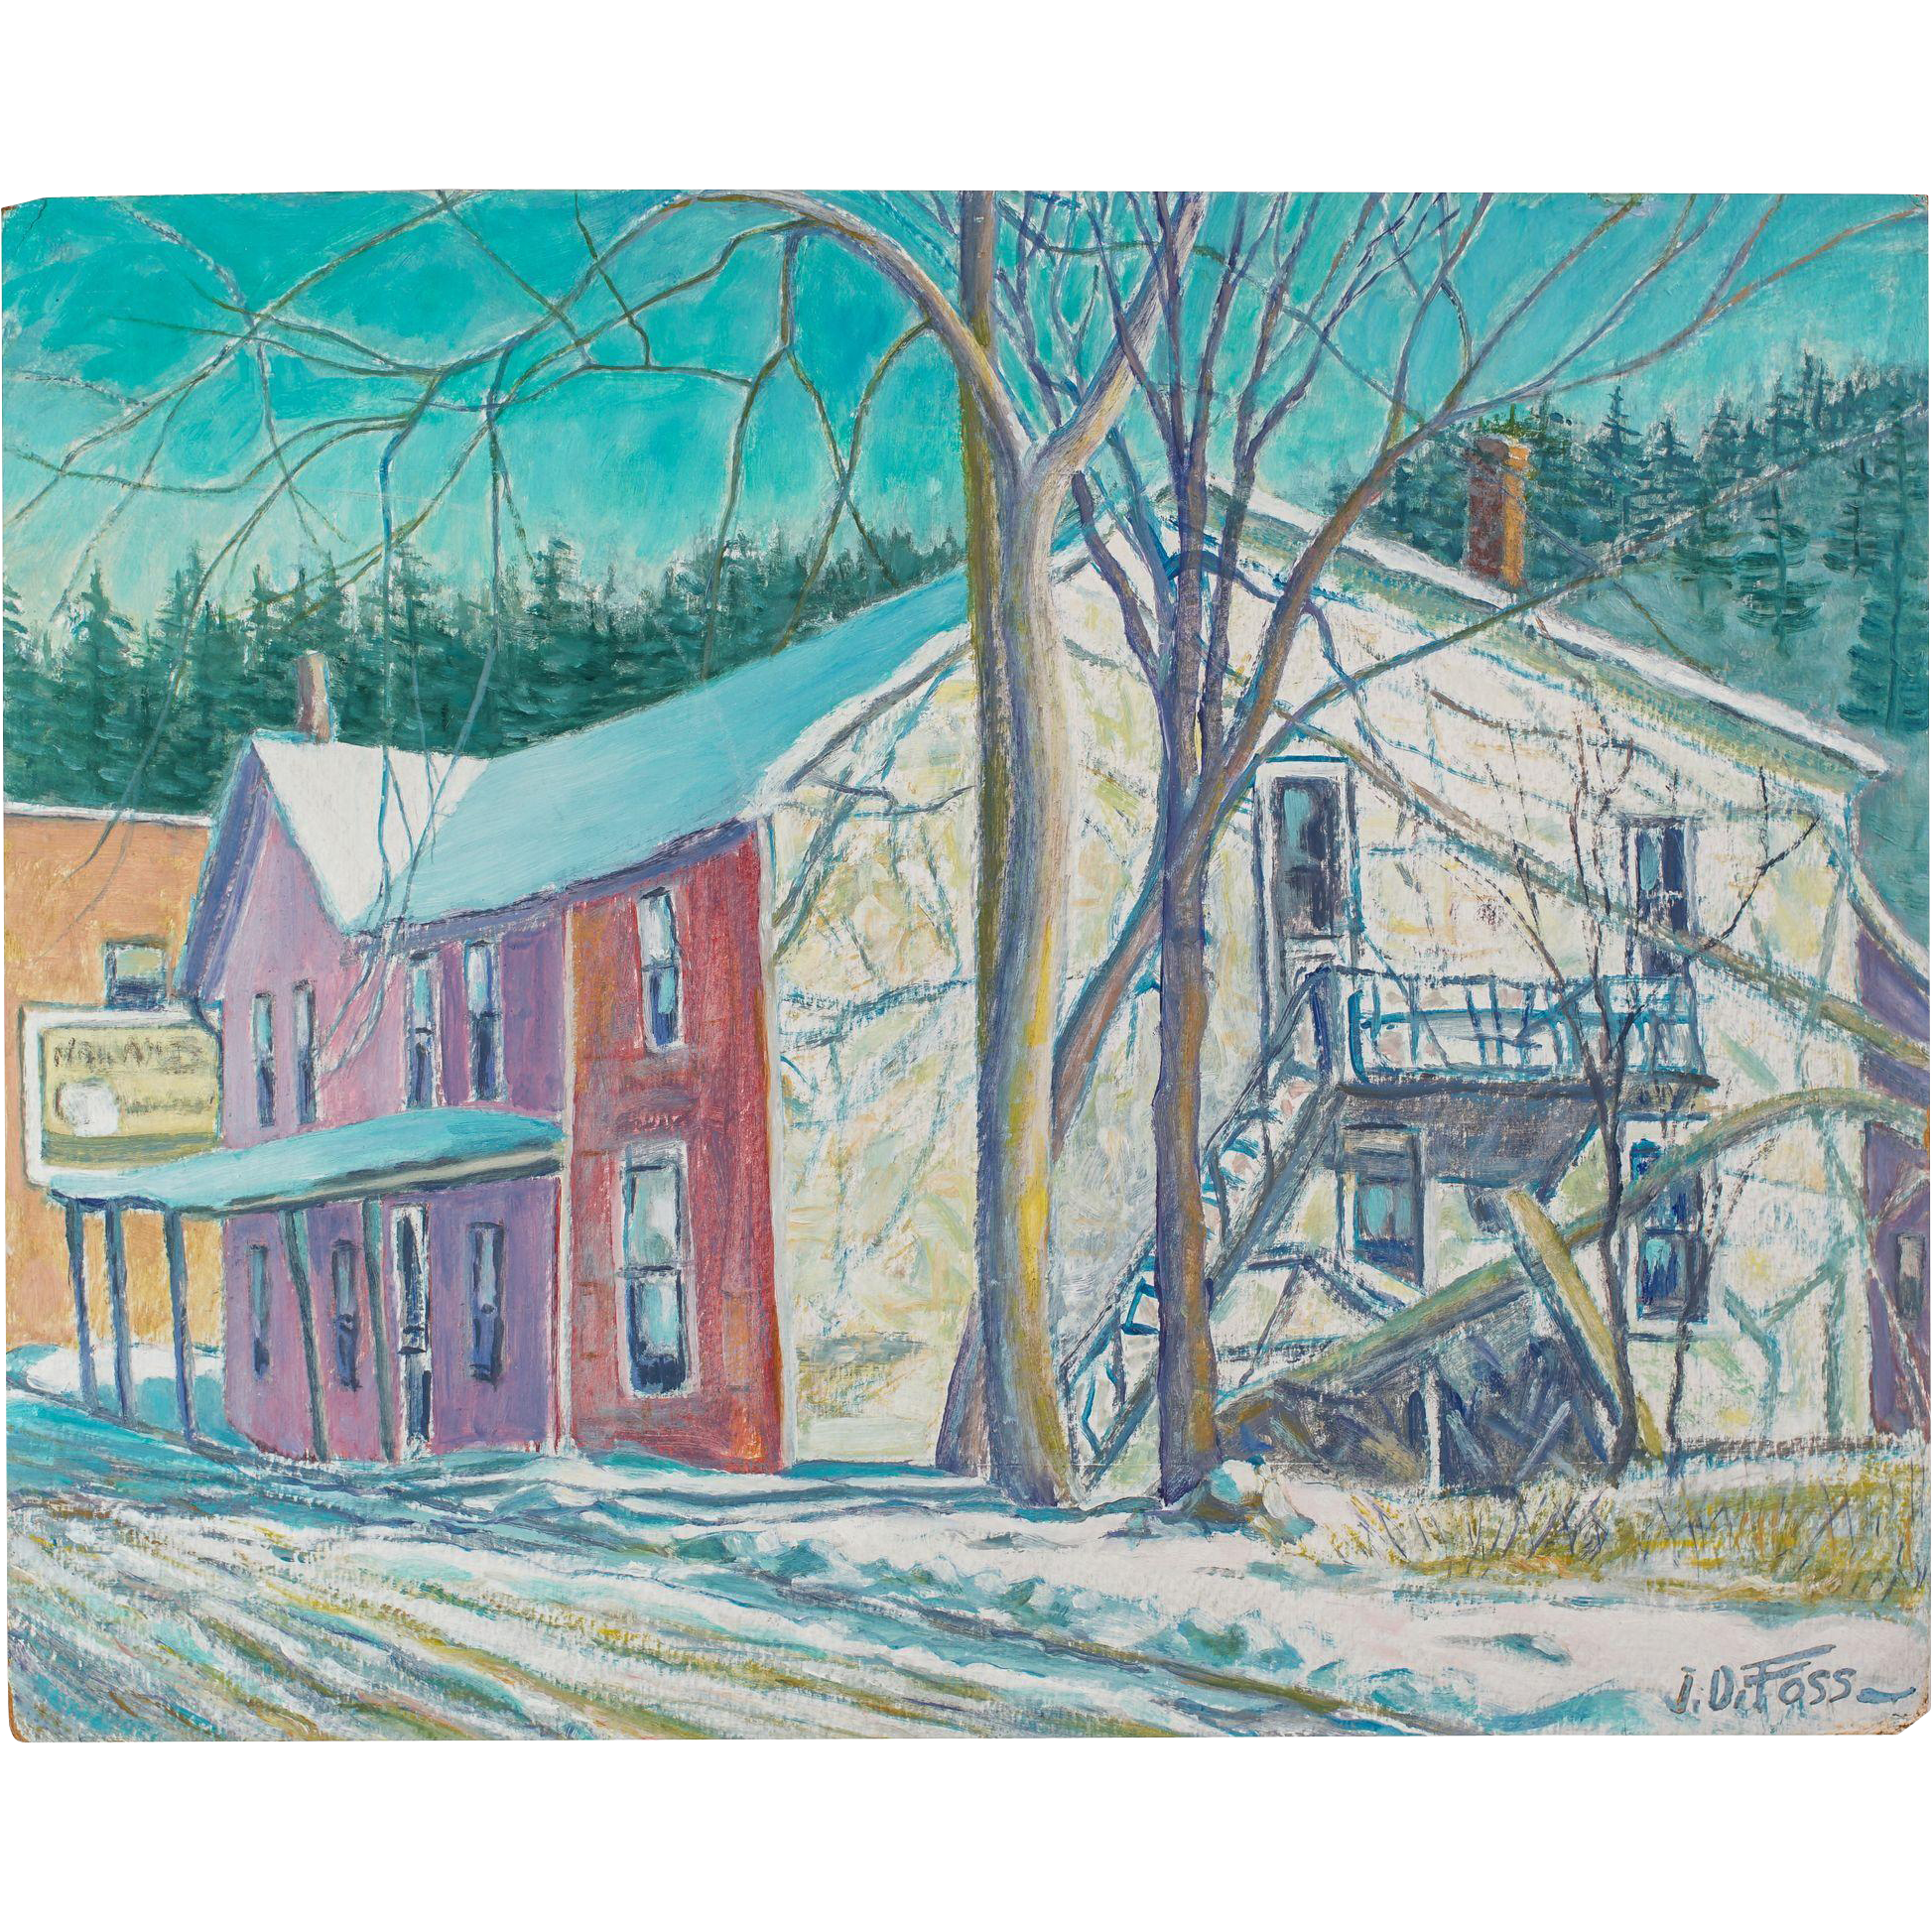 Old Galesville Hotel, Oil on Board by Wisconsin Artist J. Dewey Foss, c. 1945